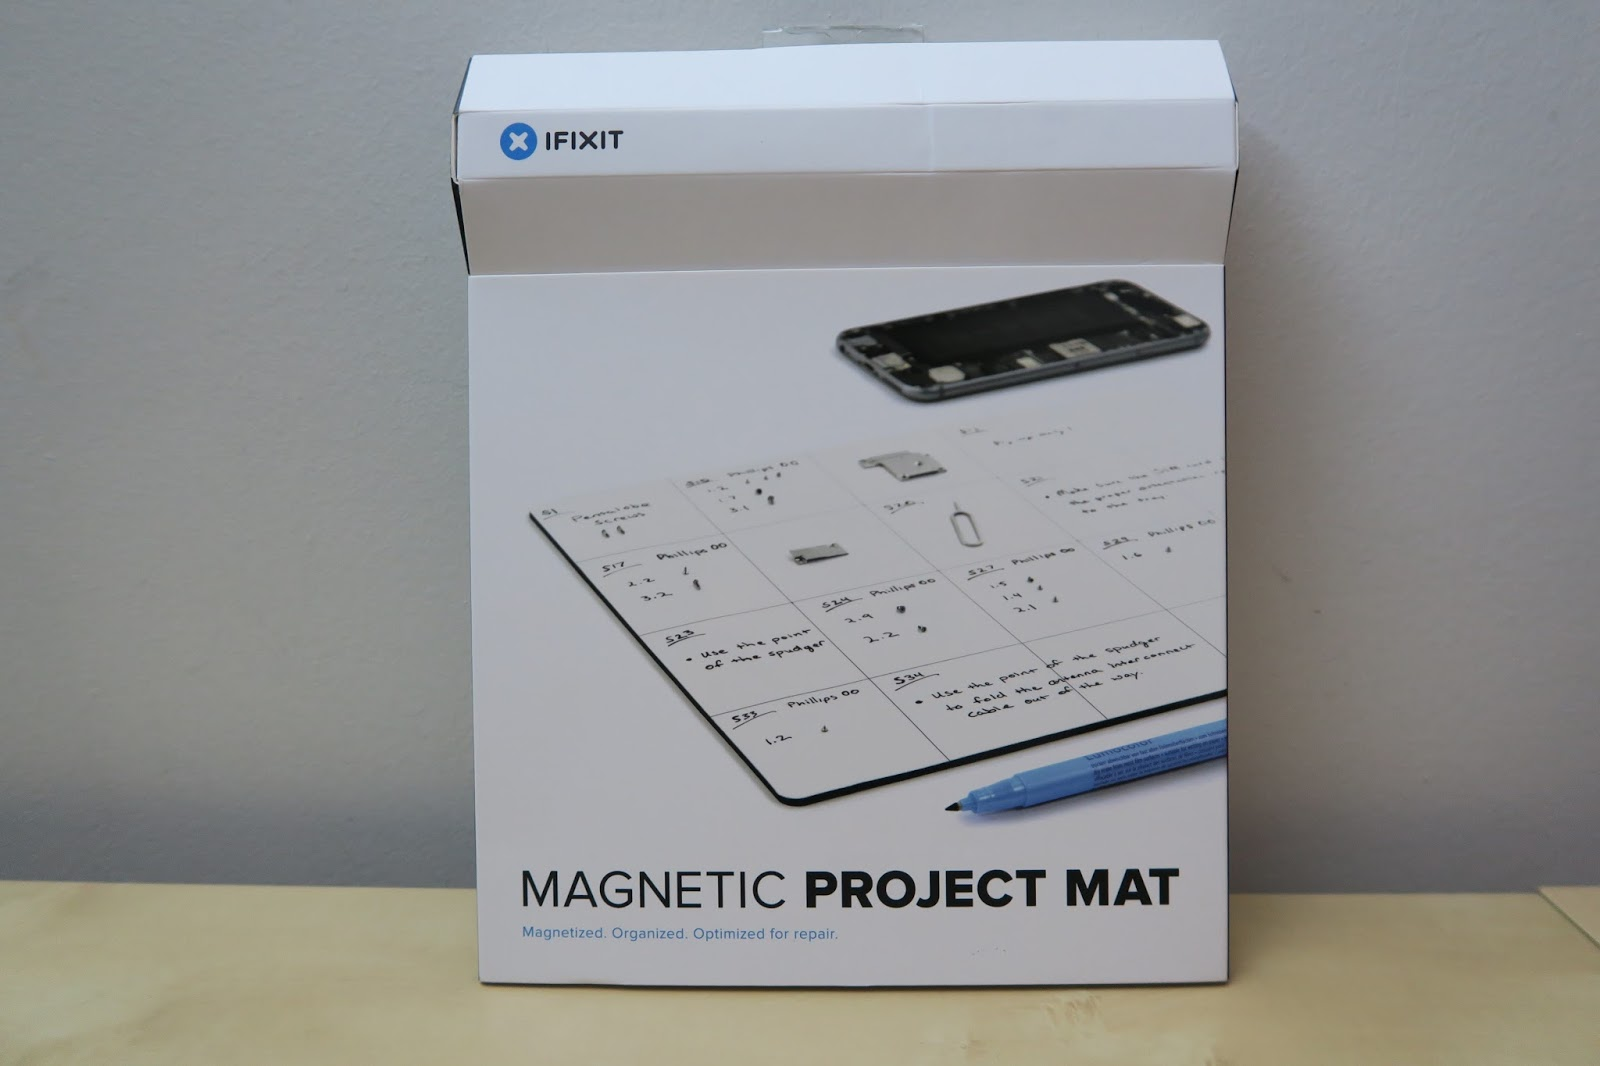 a minha casa digital unboxing ifixit pro tech toolkit e magnetic project mat. Black Bedroom Furniture Sets. Home Design Ideas